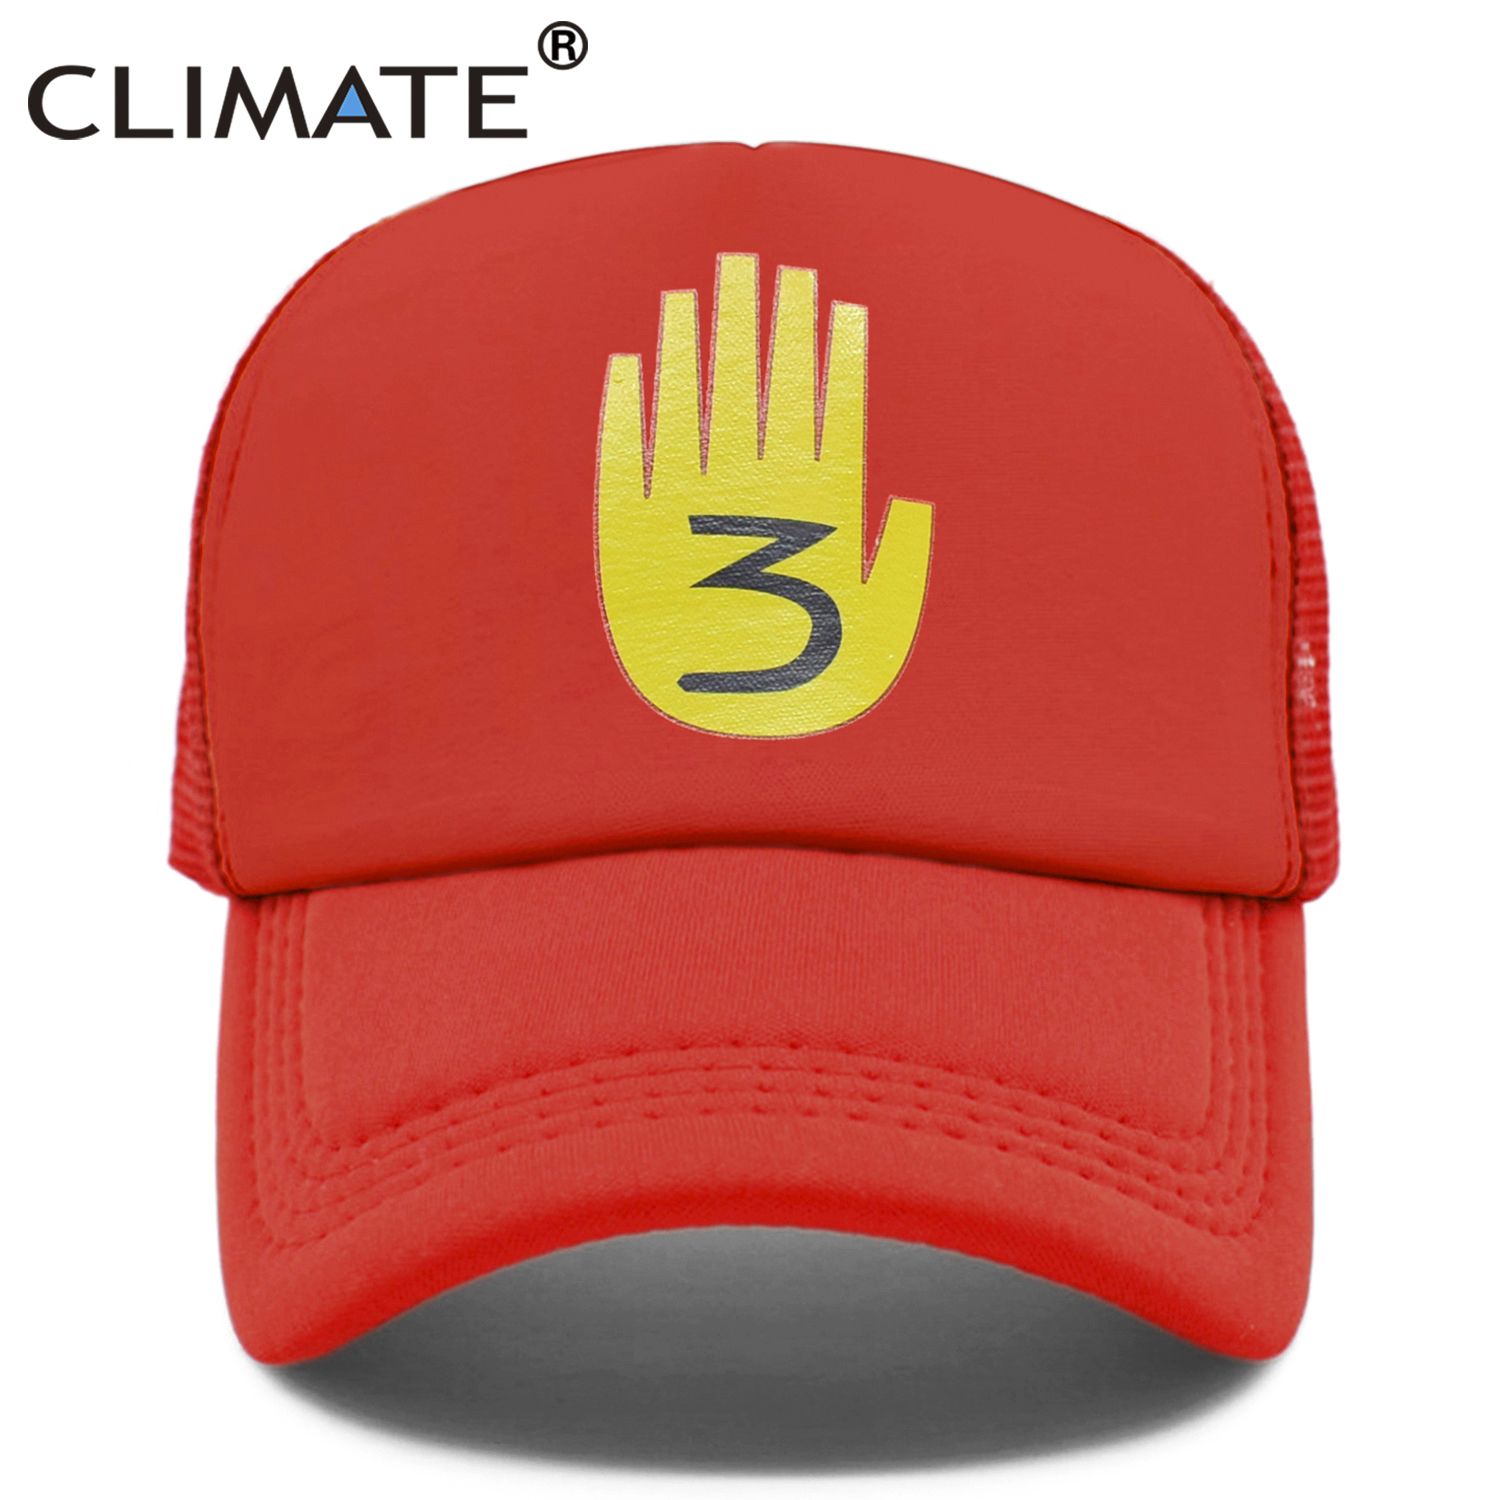 CLIMATE Gravity Falls Dipper   Caps   Journal Number 3 Book   Baseball     Cap   Youth Boys Black Number 3 Cool Sport Hat   Caps   for teenagers